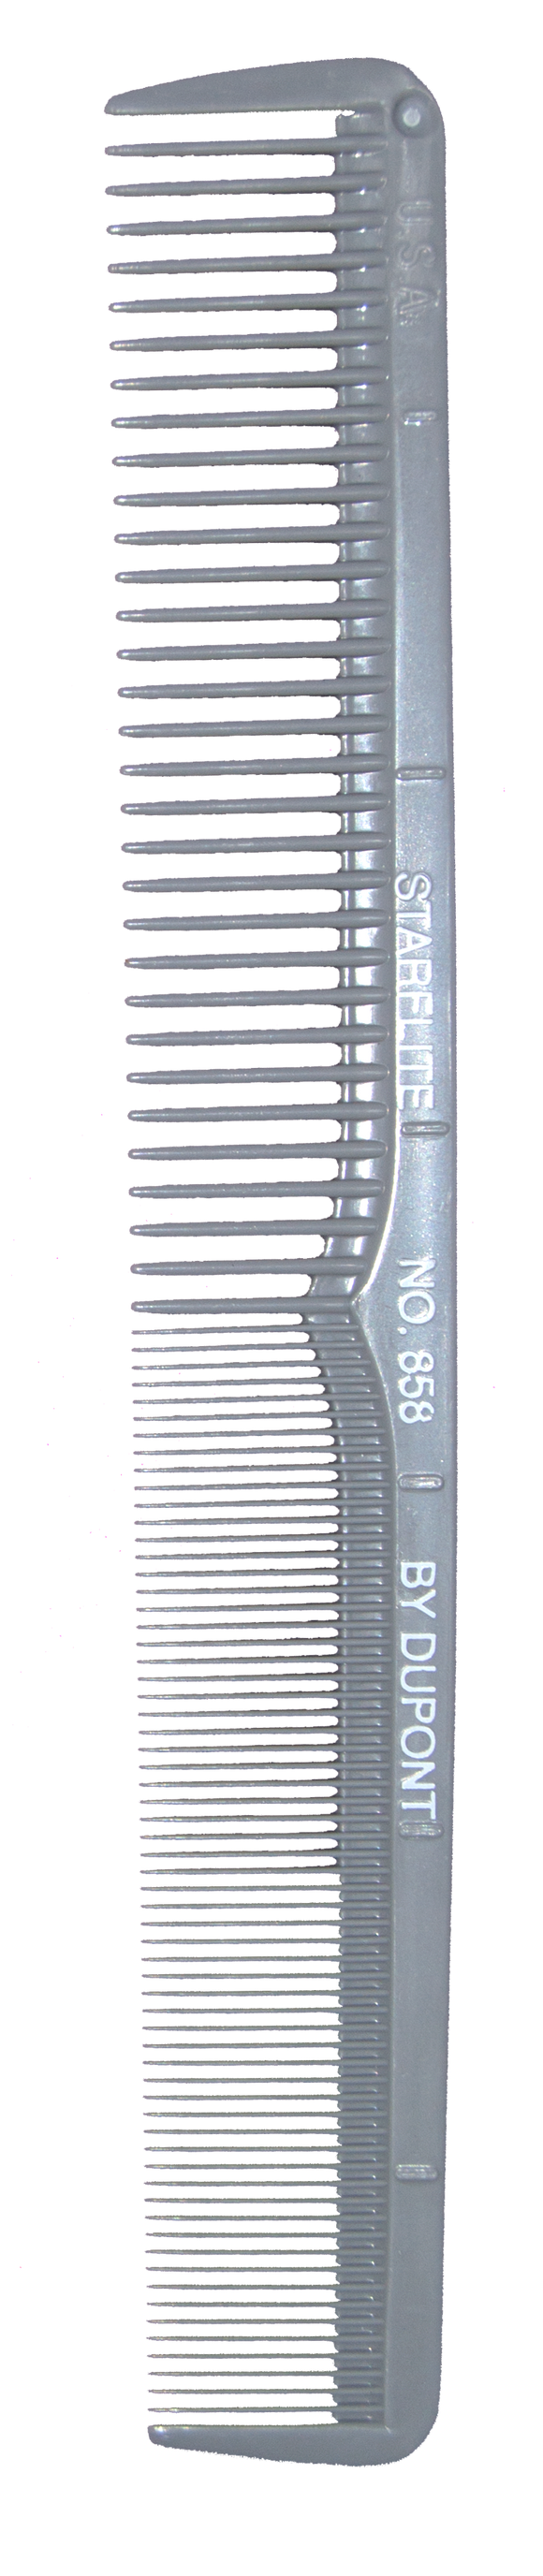 Starflite Cutting Comb